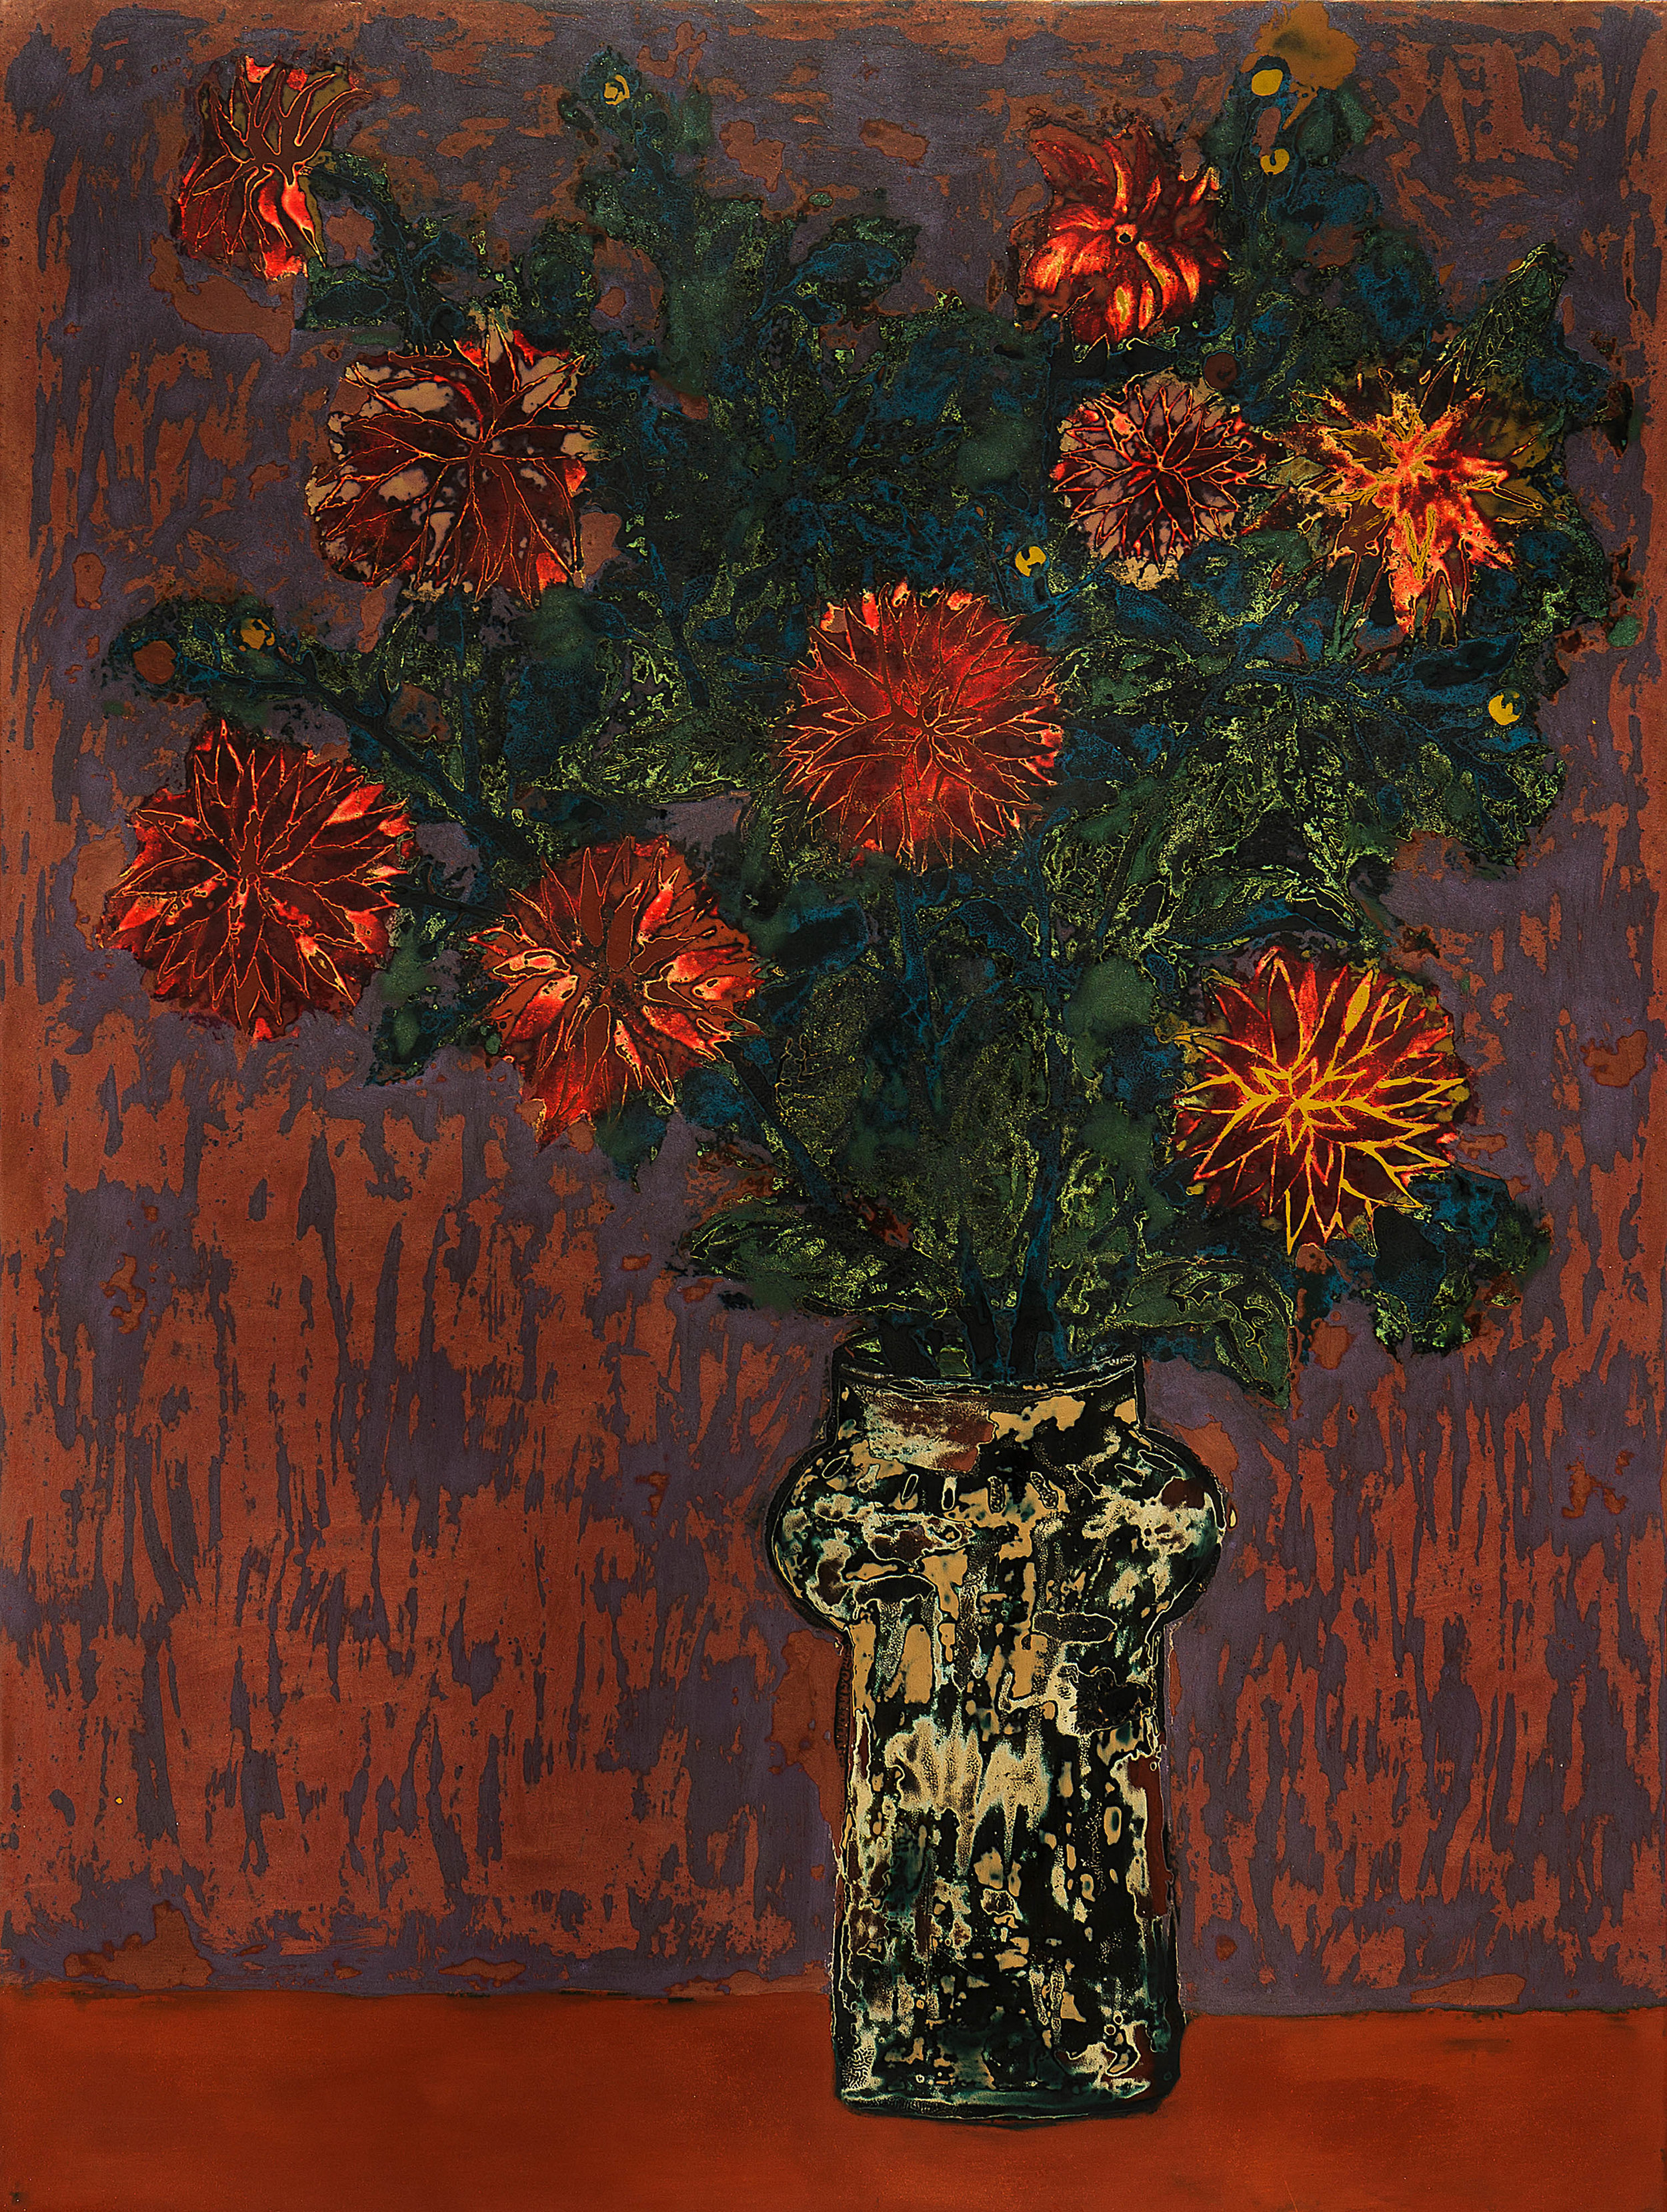 Dahlias on Red Table , 2016, Lacquer on wood panel, 80 x 60 cm